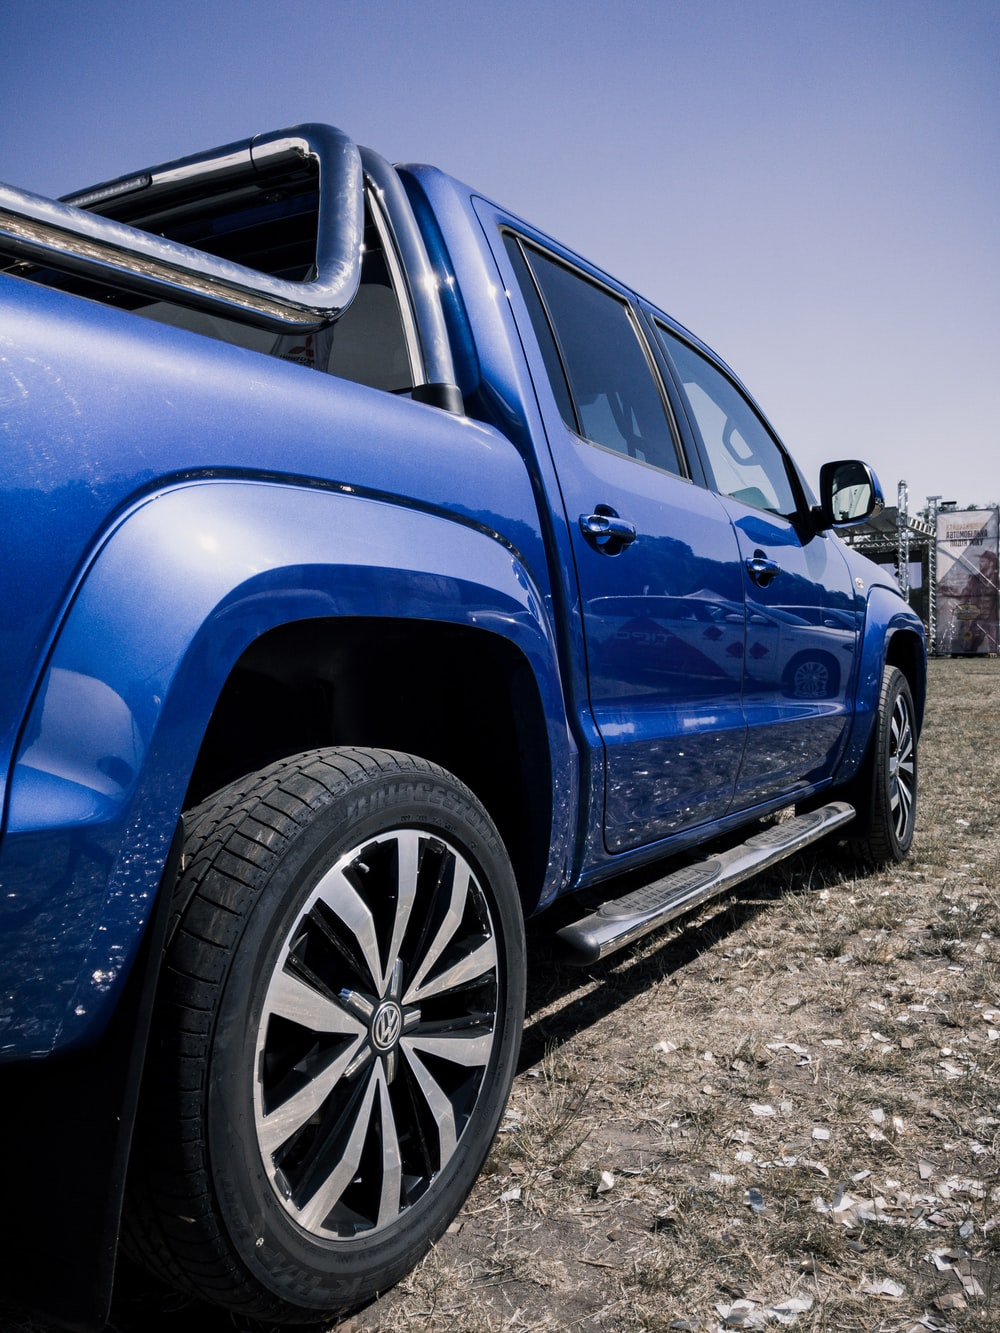 blue suv on gray dirt ground during daytime